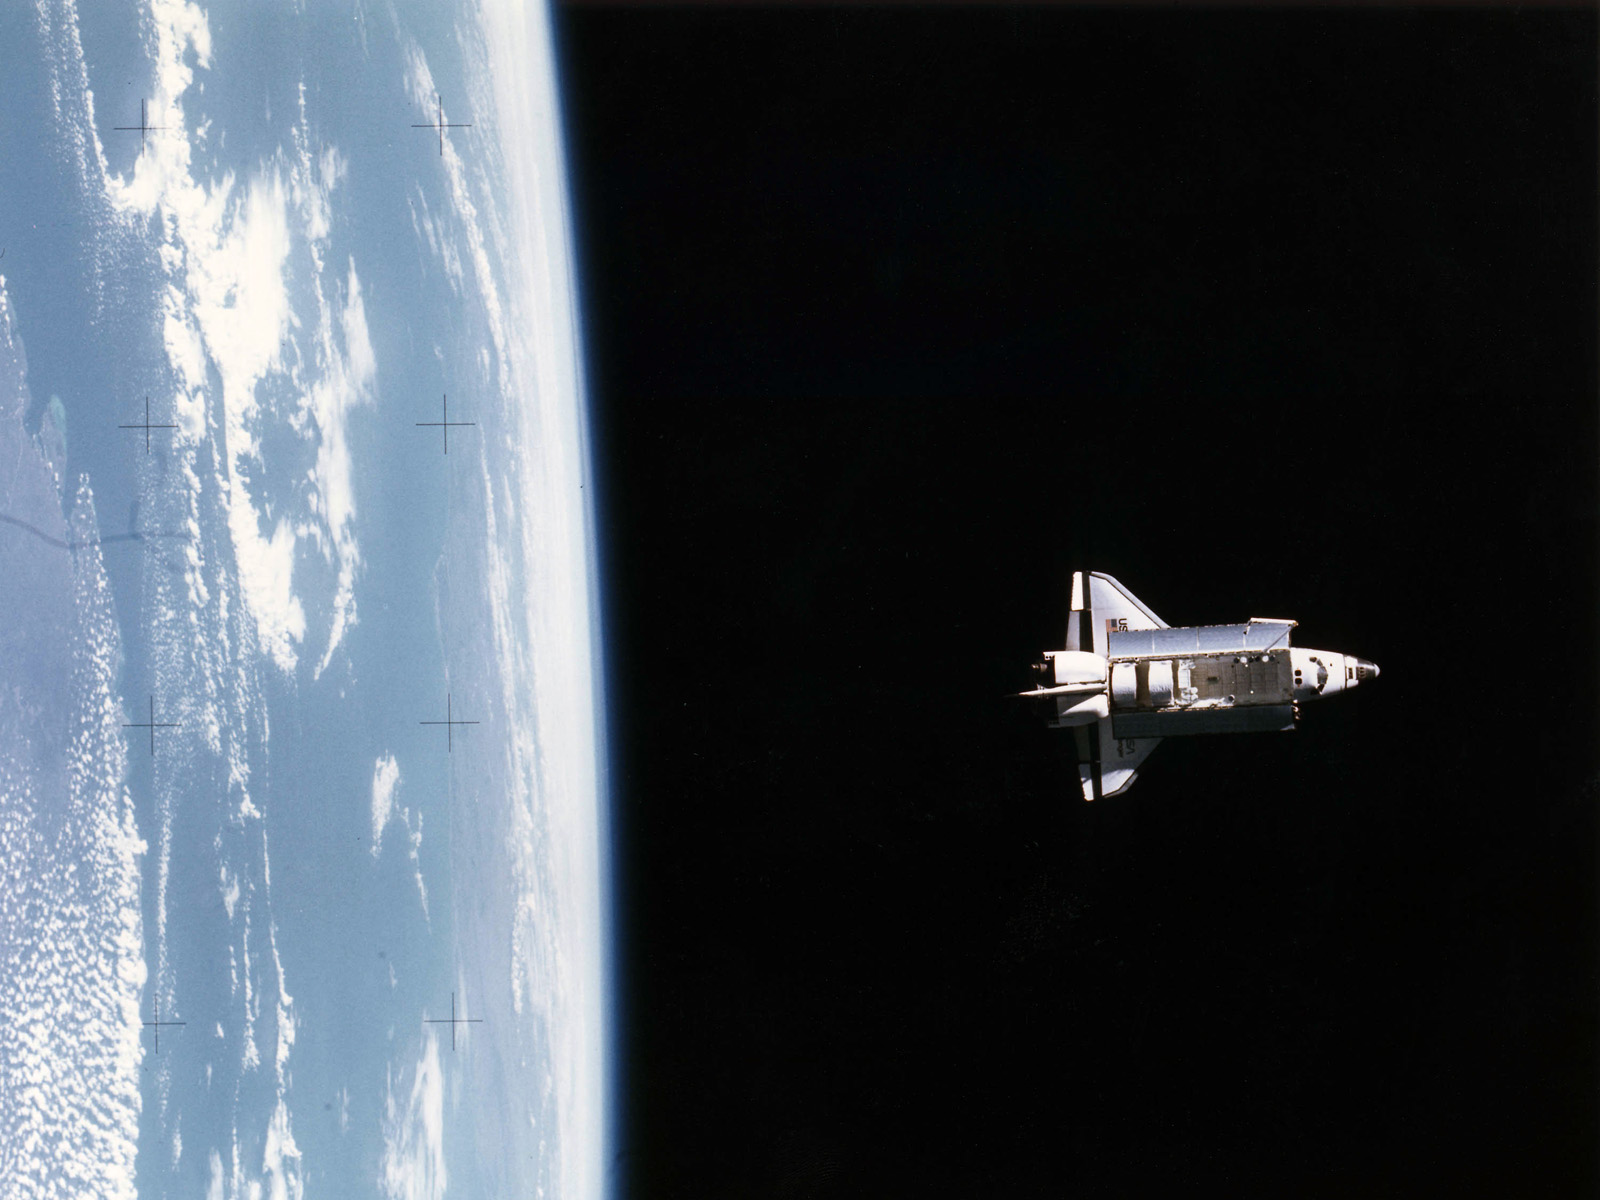 hd space shuttle in space - photo #2